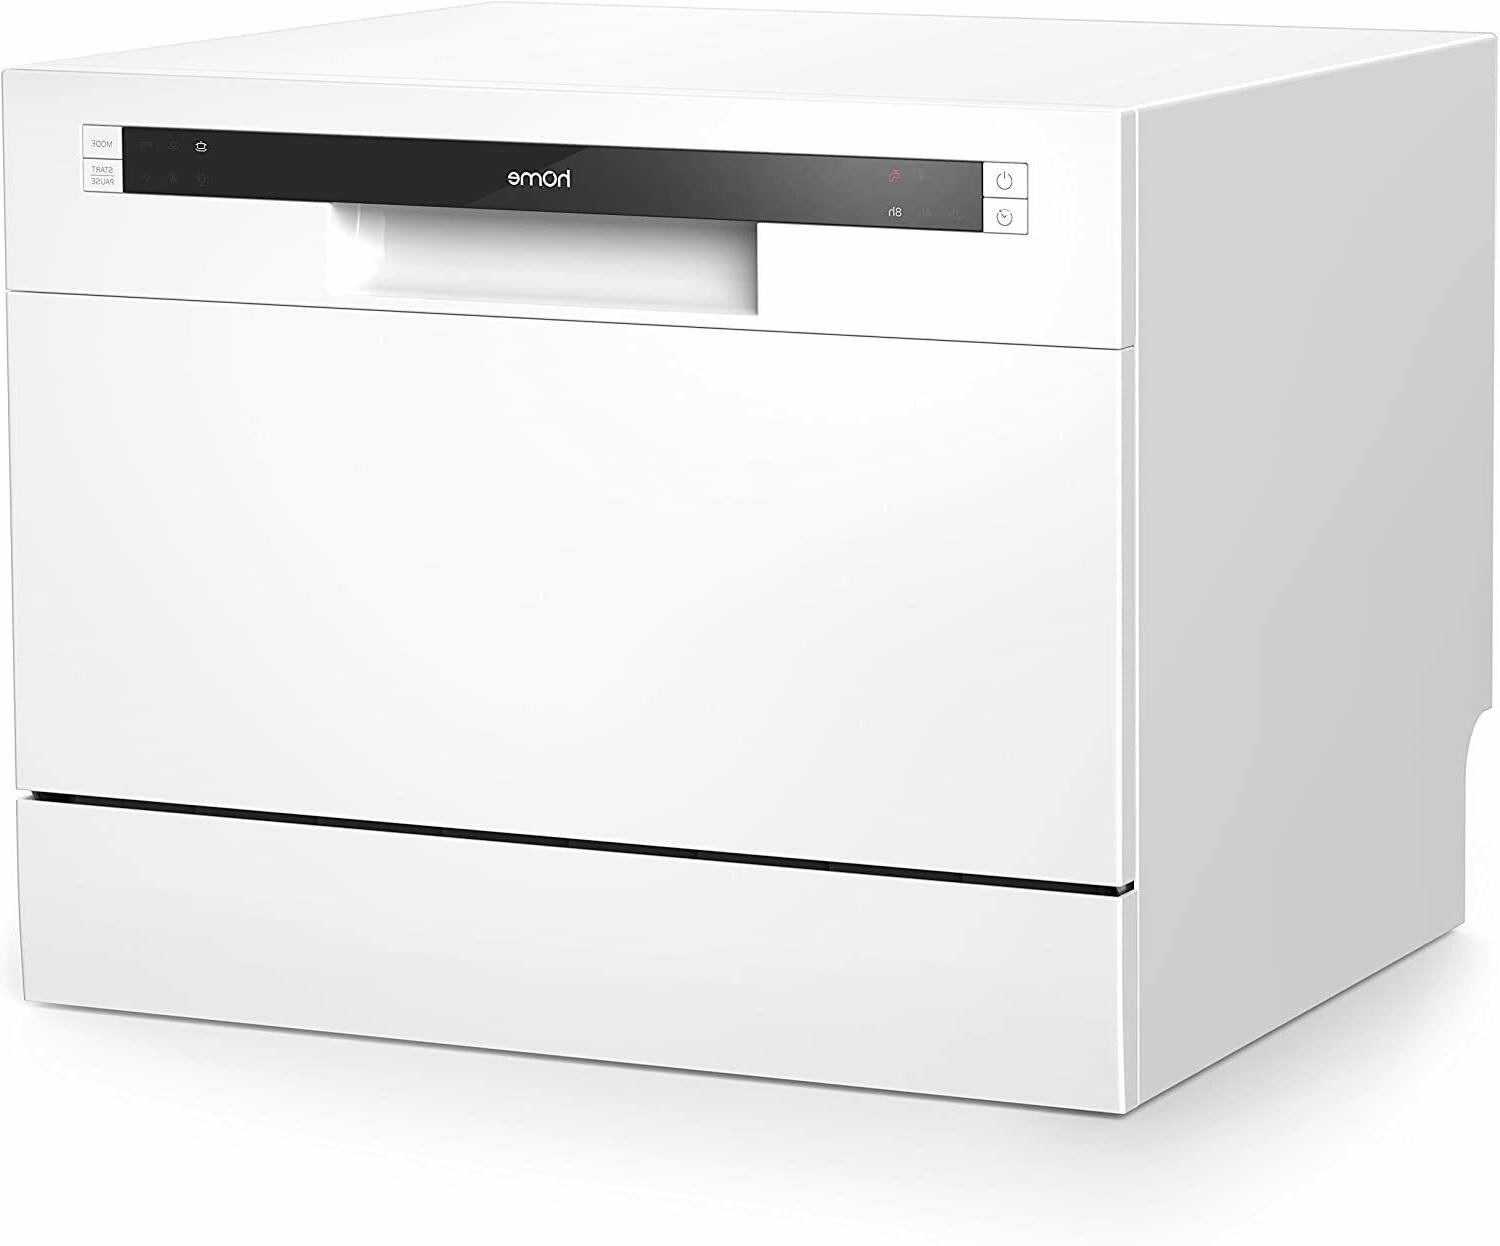 compact countertop dishwasher energy star portable mini